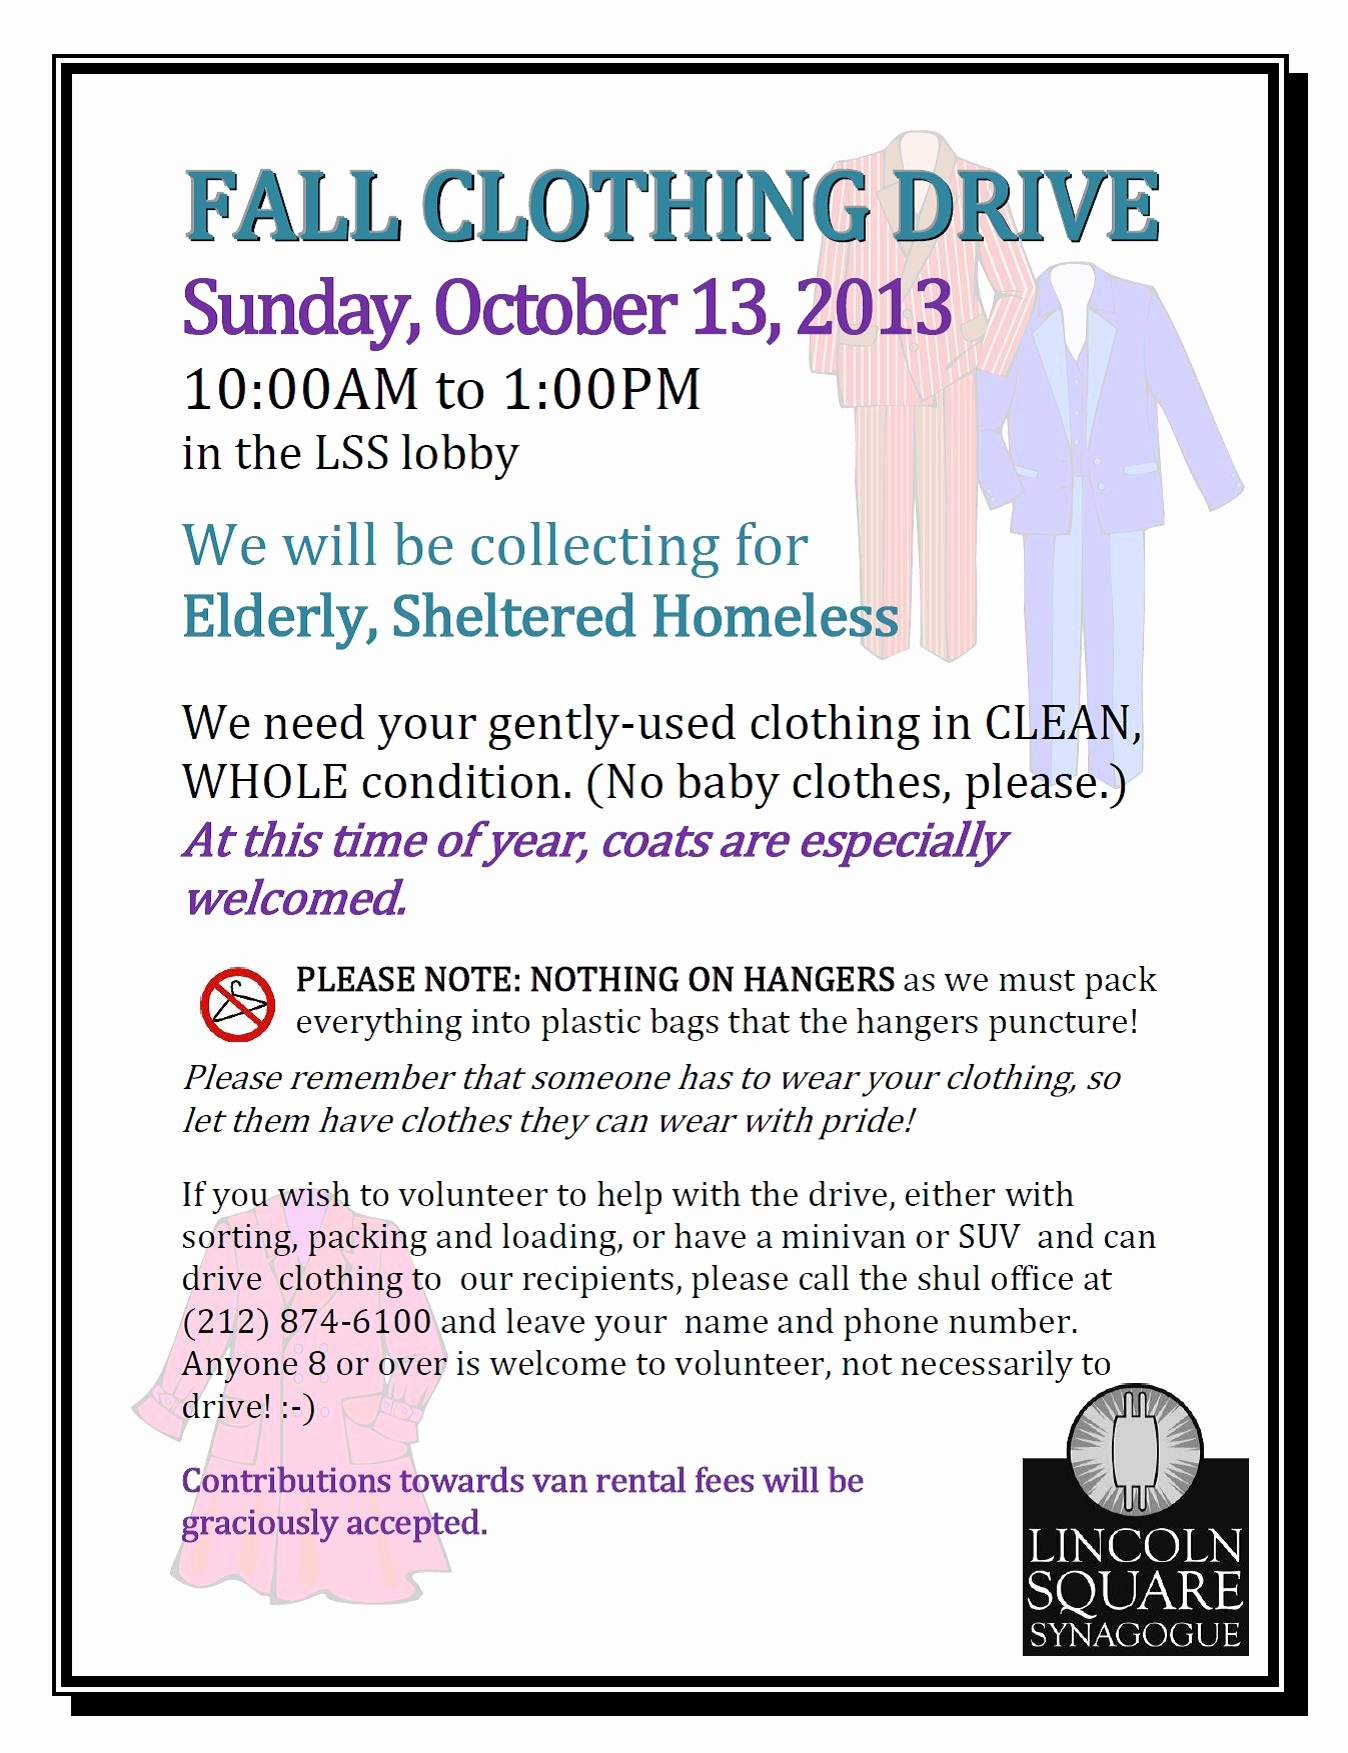 Clothing Drive Flyer Template Inspirational Fall Clothing Drive event Lincoln Square Synagogue